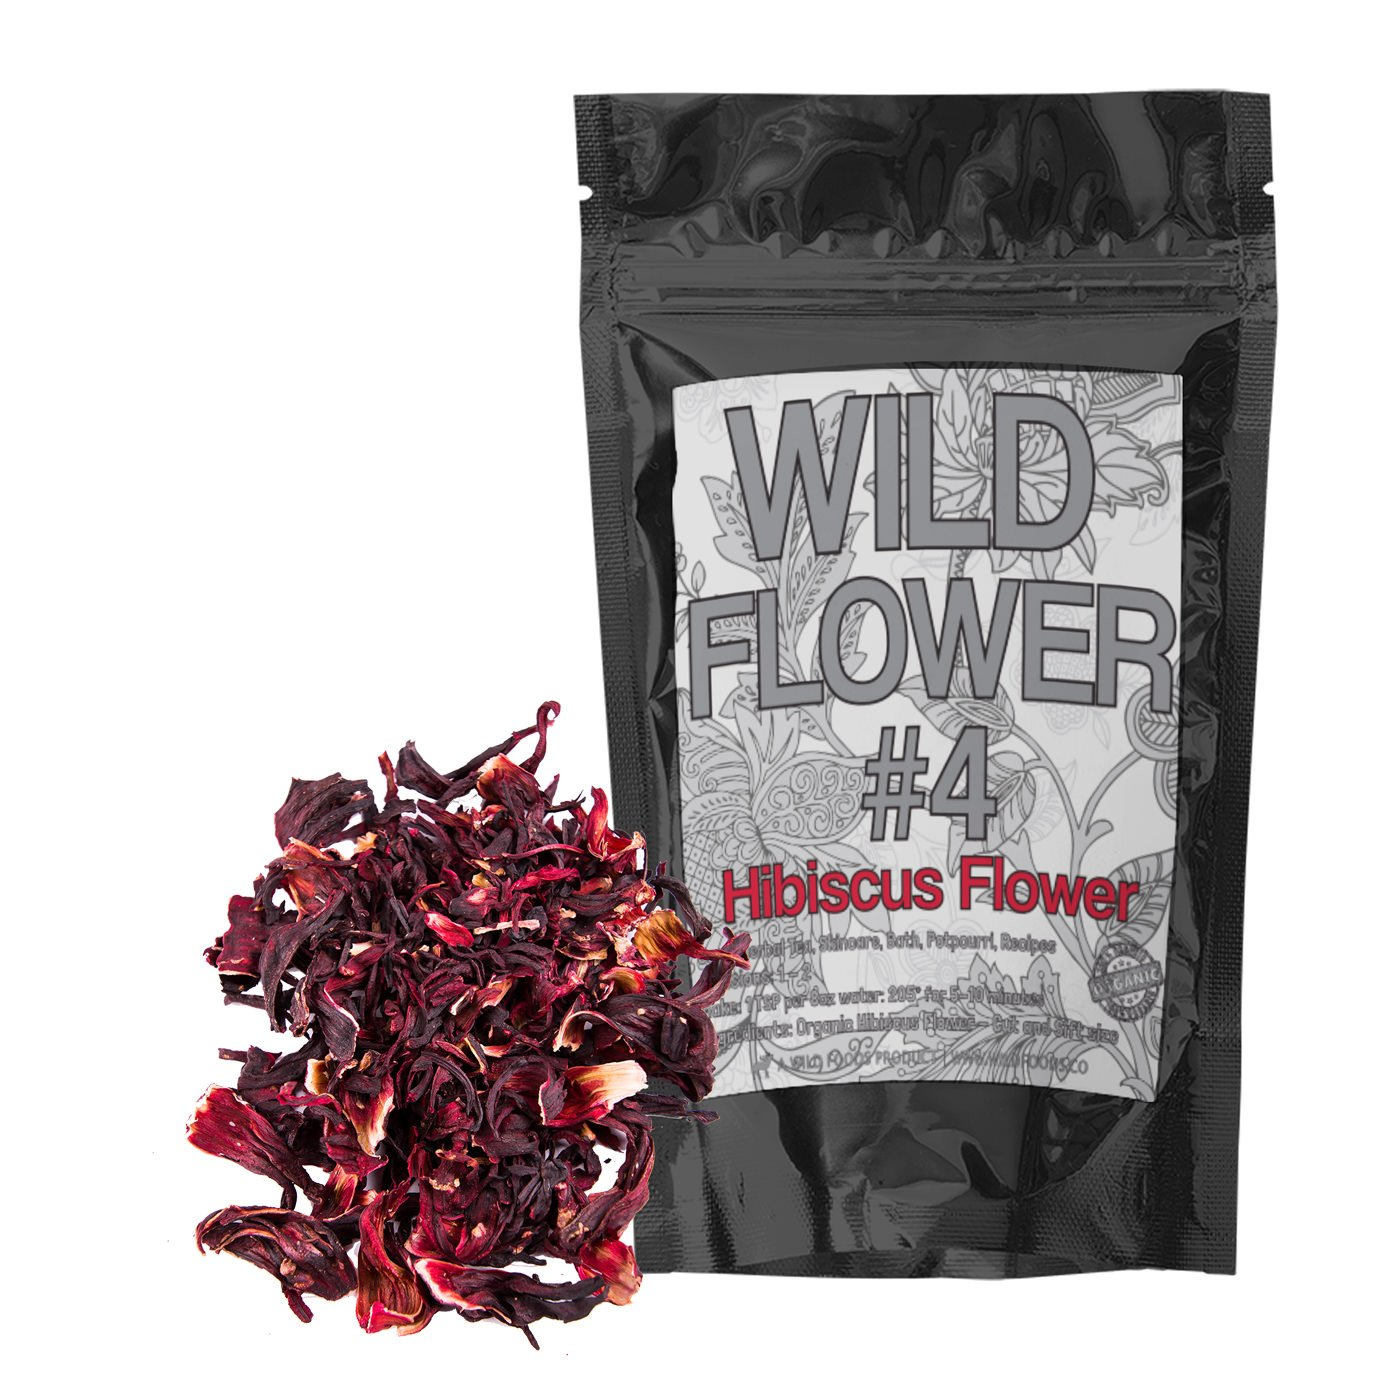 Best dried hibiscus flowers for tea amazon dried whole hibiscus flowers organically grown perfect for homemade tea blends potpourri bath salts gifts crafts wild flower 4 4 ounce izmirmasajfo